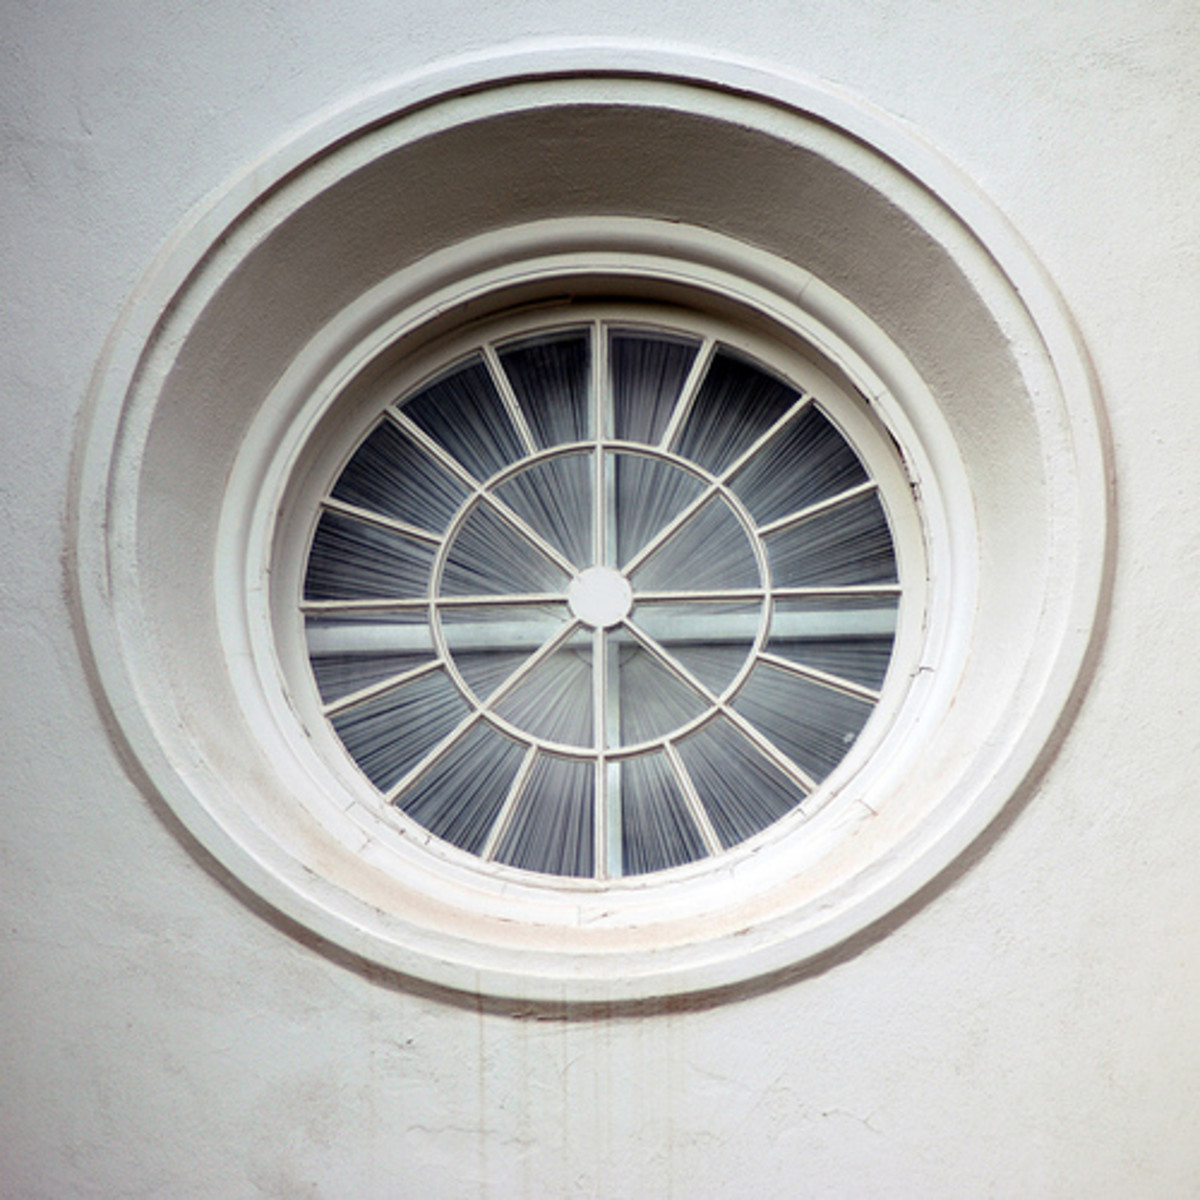 Shirred sunburst treatment on round window.